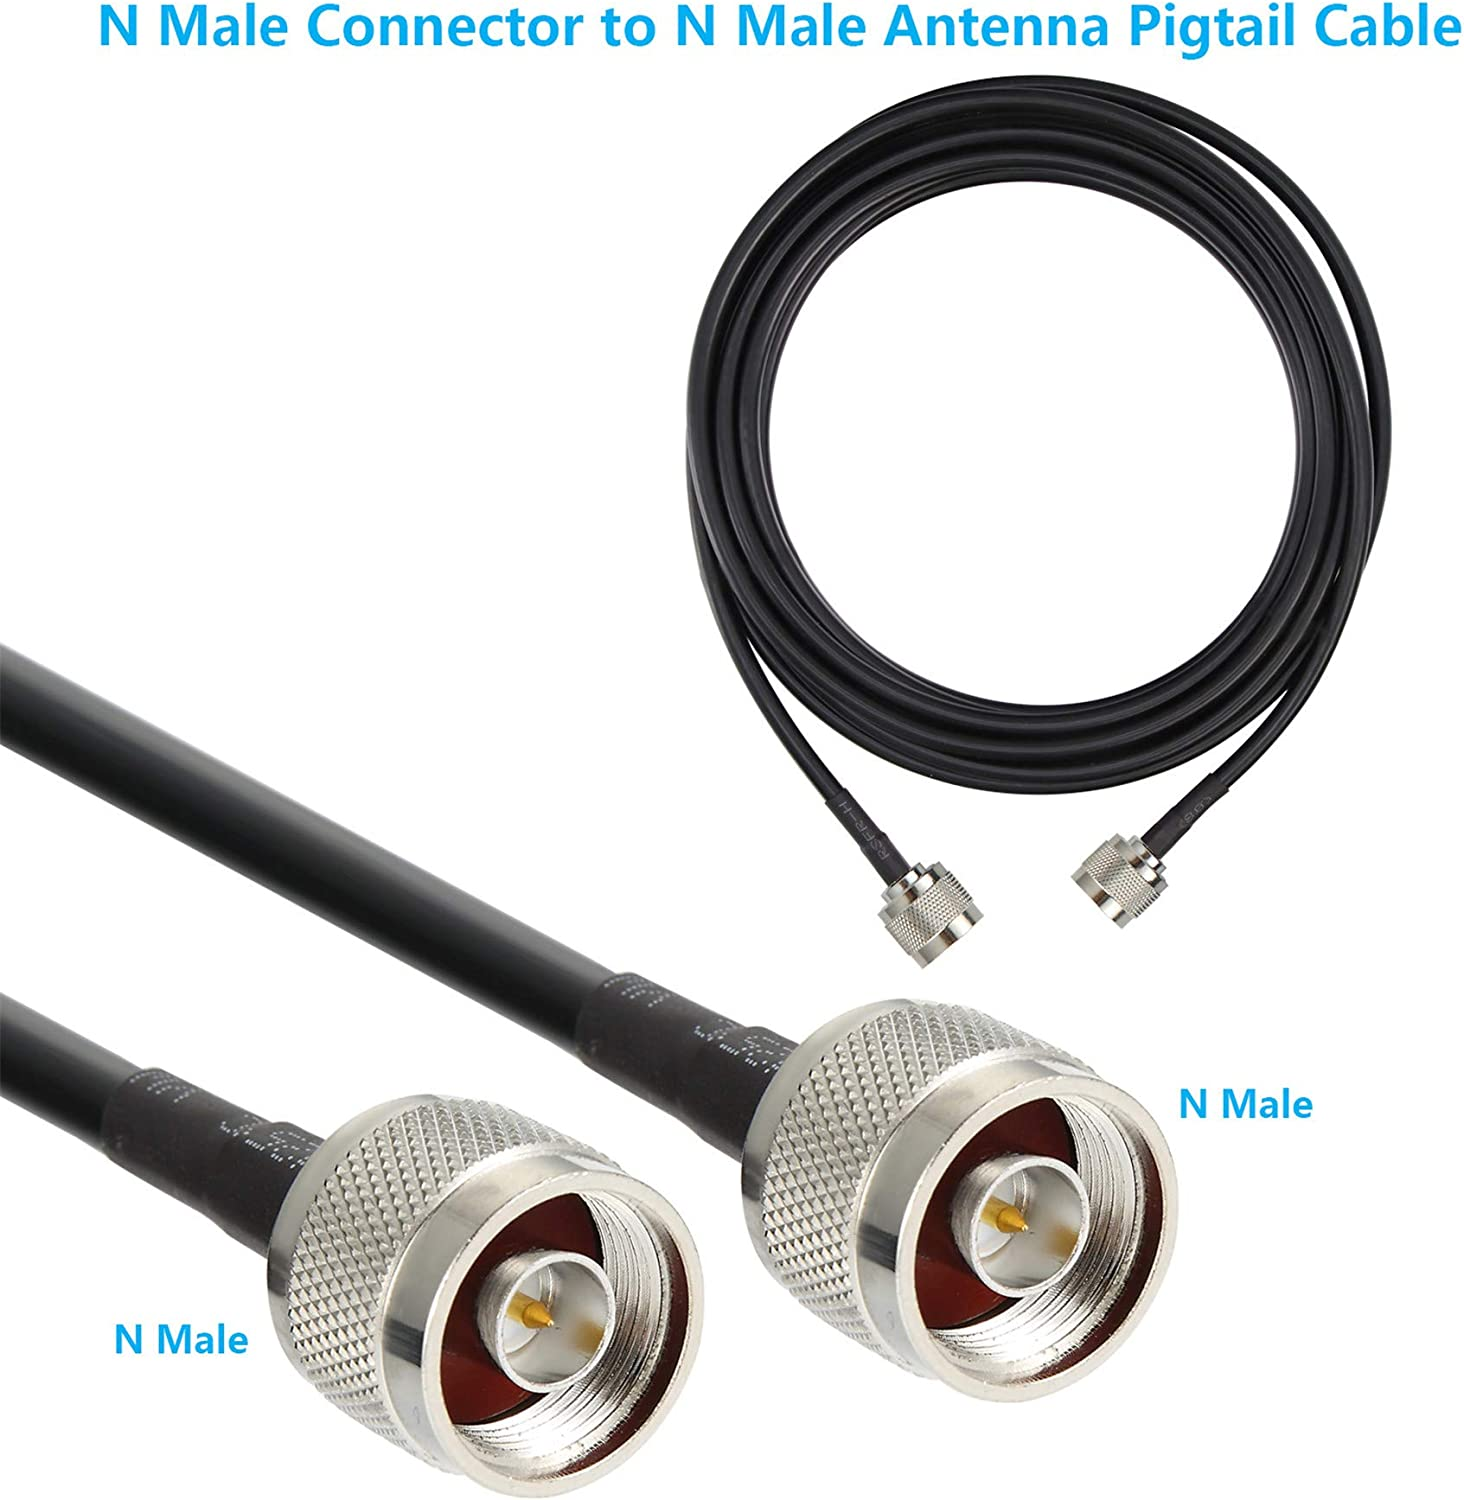 GEMEK Pure Copper Coax Cables for 3G//4G//5G//LTE//ADS-B//Ham//GPS//WiFi//RF Radio to Antenna or Surge Arrester Use 25 ft Low-Loss Coaxial Extension Cable N Male to N Male Connector 50 Ohm Not for TV